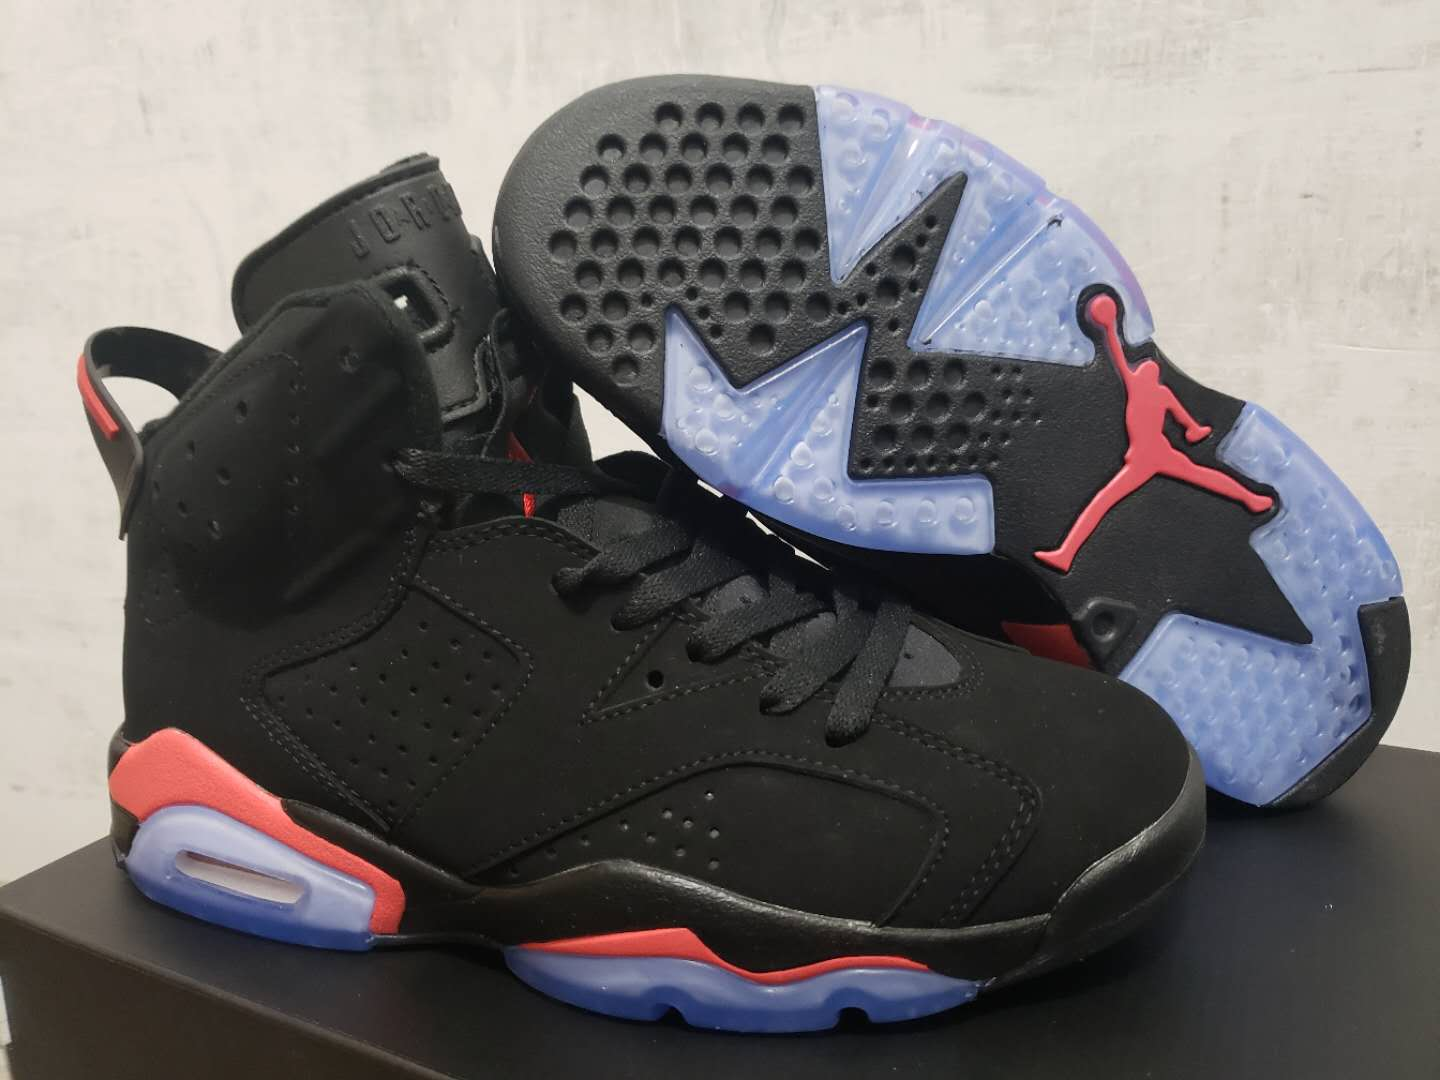 Women's Running weapon Air Jordan 6 Basketball Shoes 001